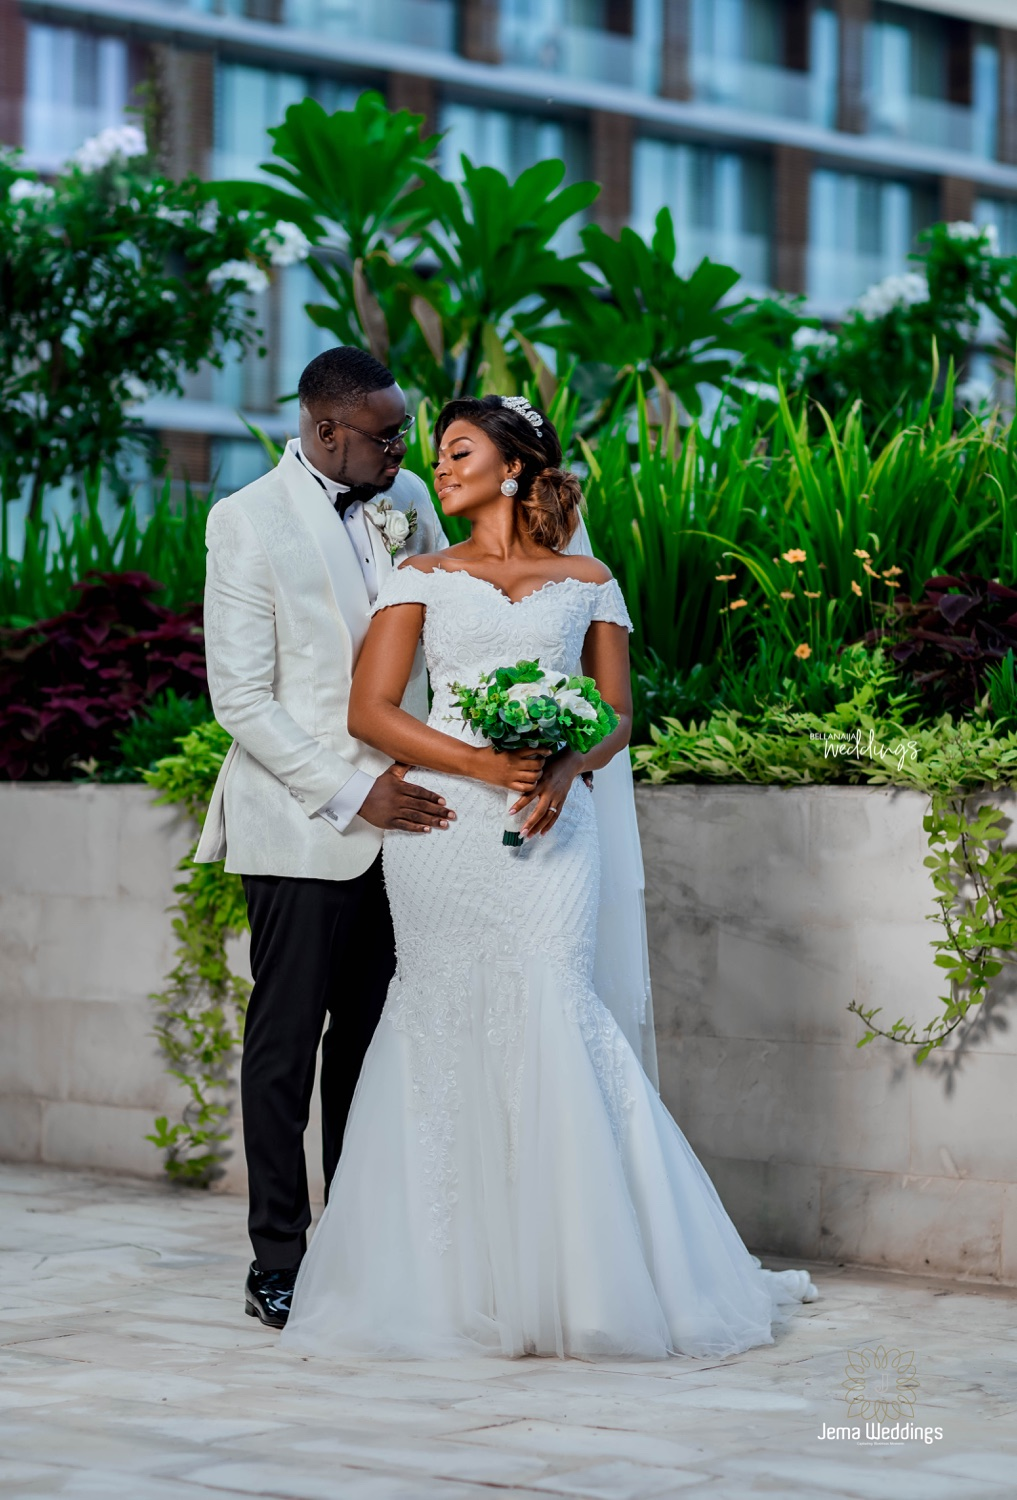 We Can T Get Enough Of The Anderclaude9 White Wedding In Ghana